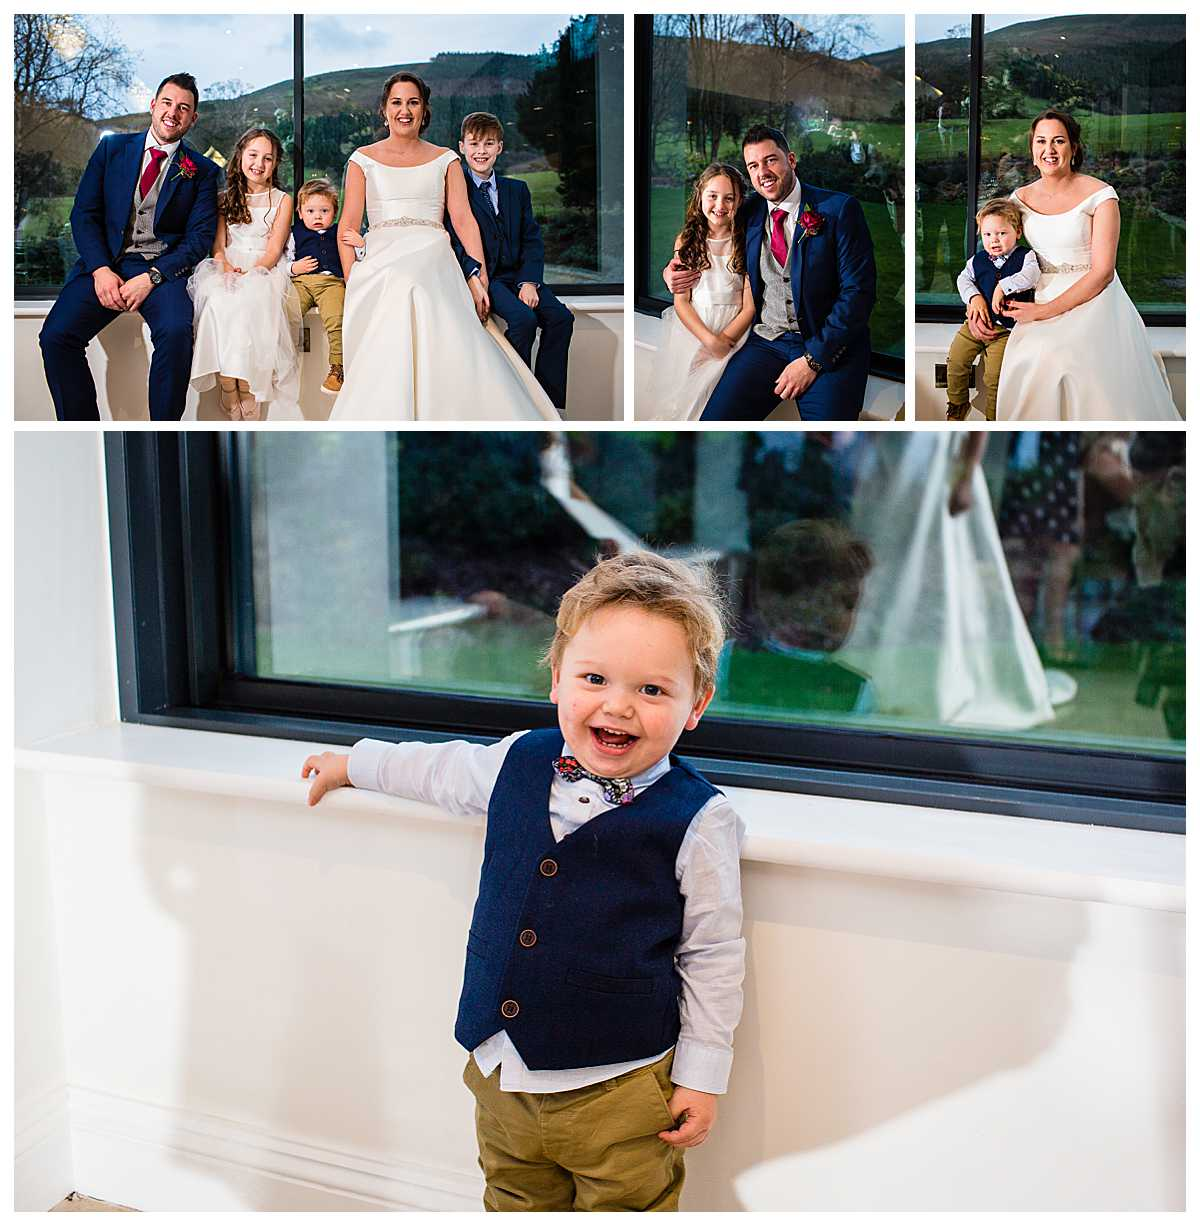 bride and groom with their children at tyn dwr hall looking very happy now they are a family unit